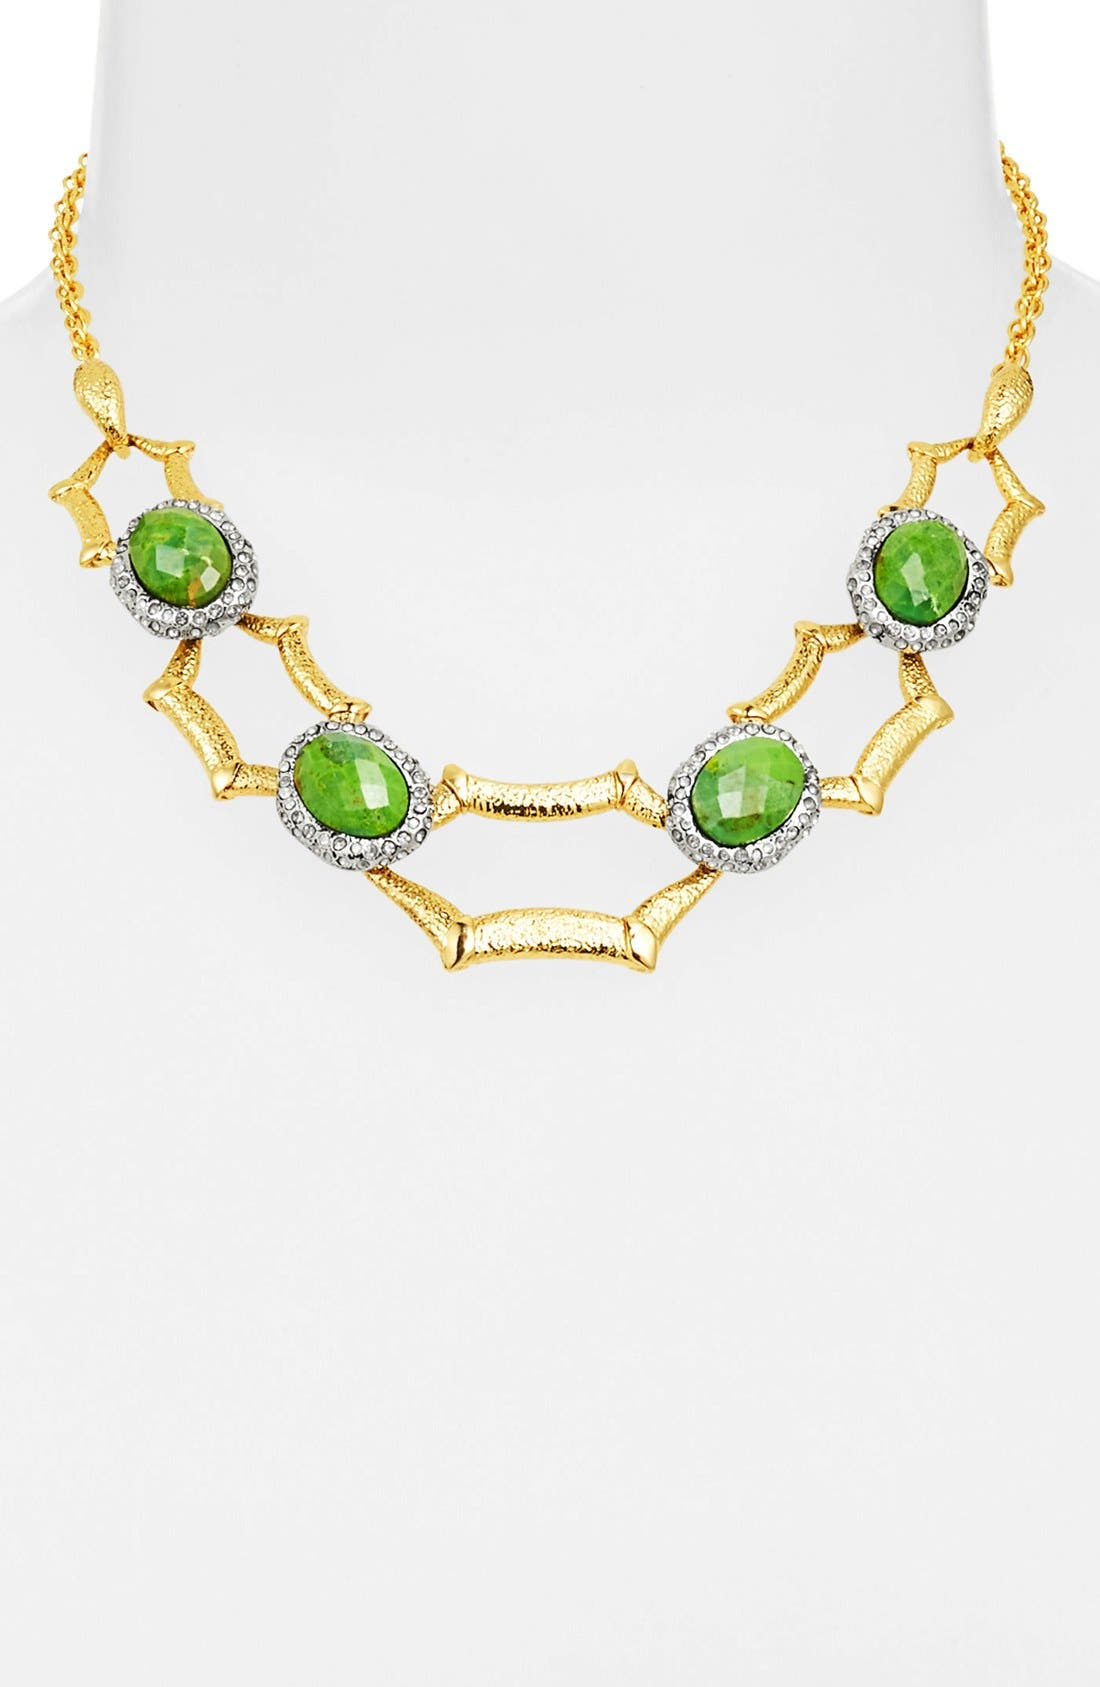 Alternate Image 1 Selected - Alexis Bittar 'Elements - Cholulian' Frontal Necklace